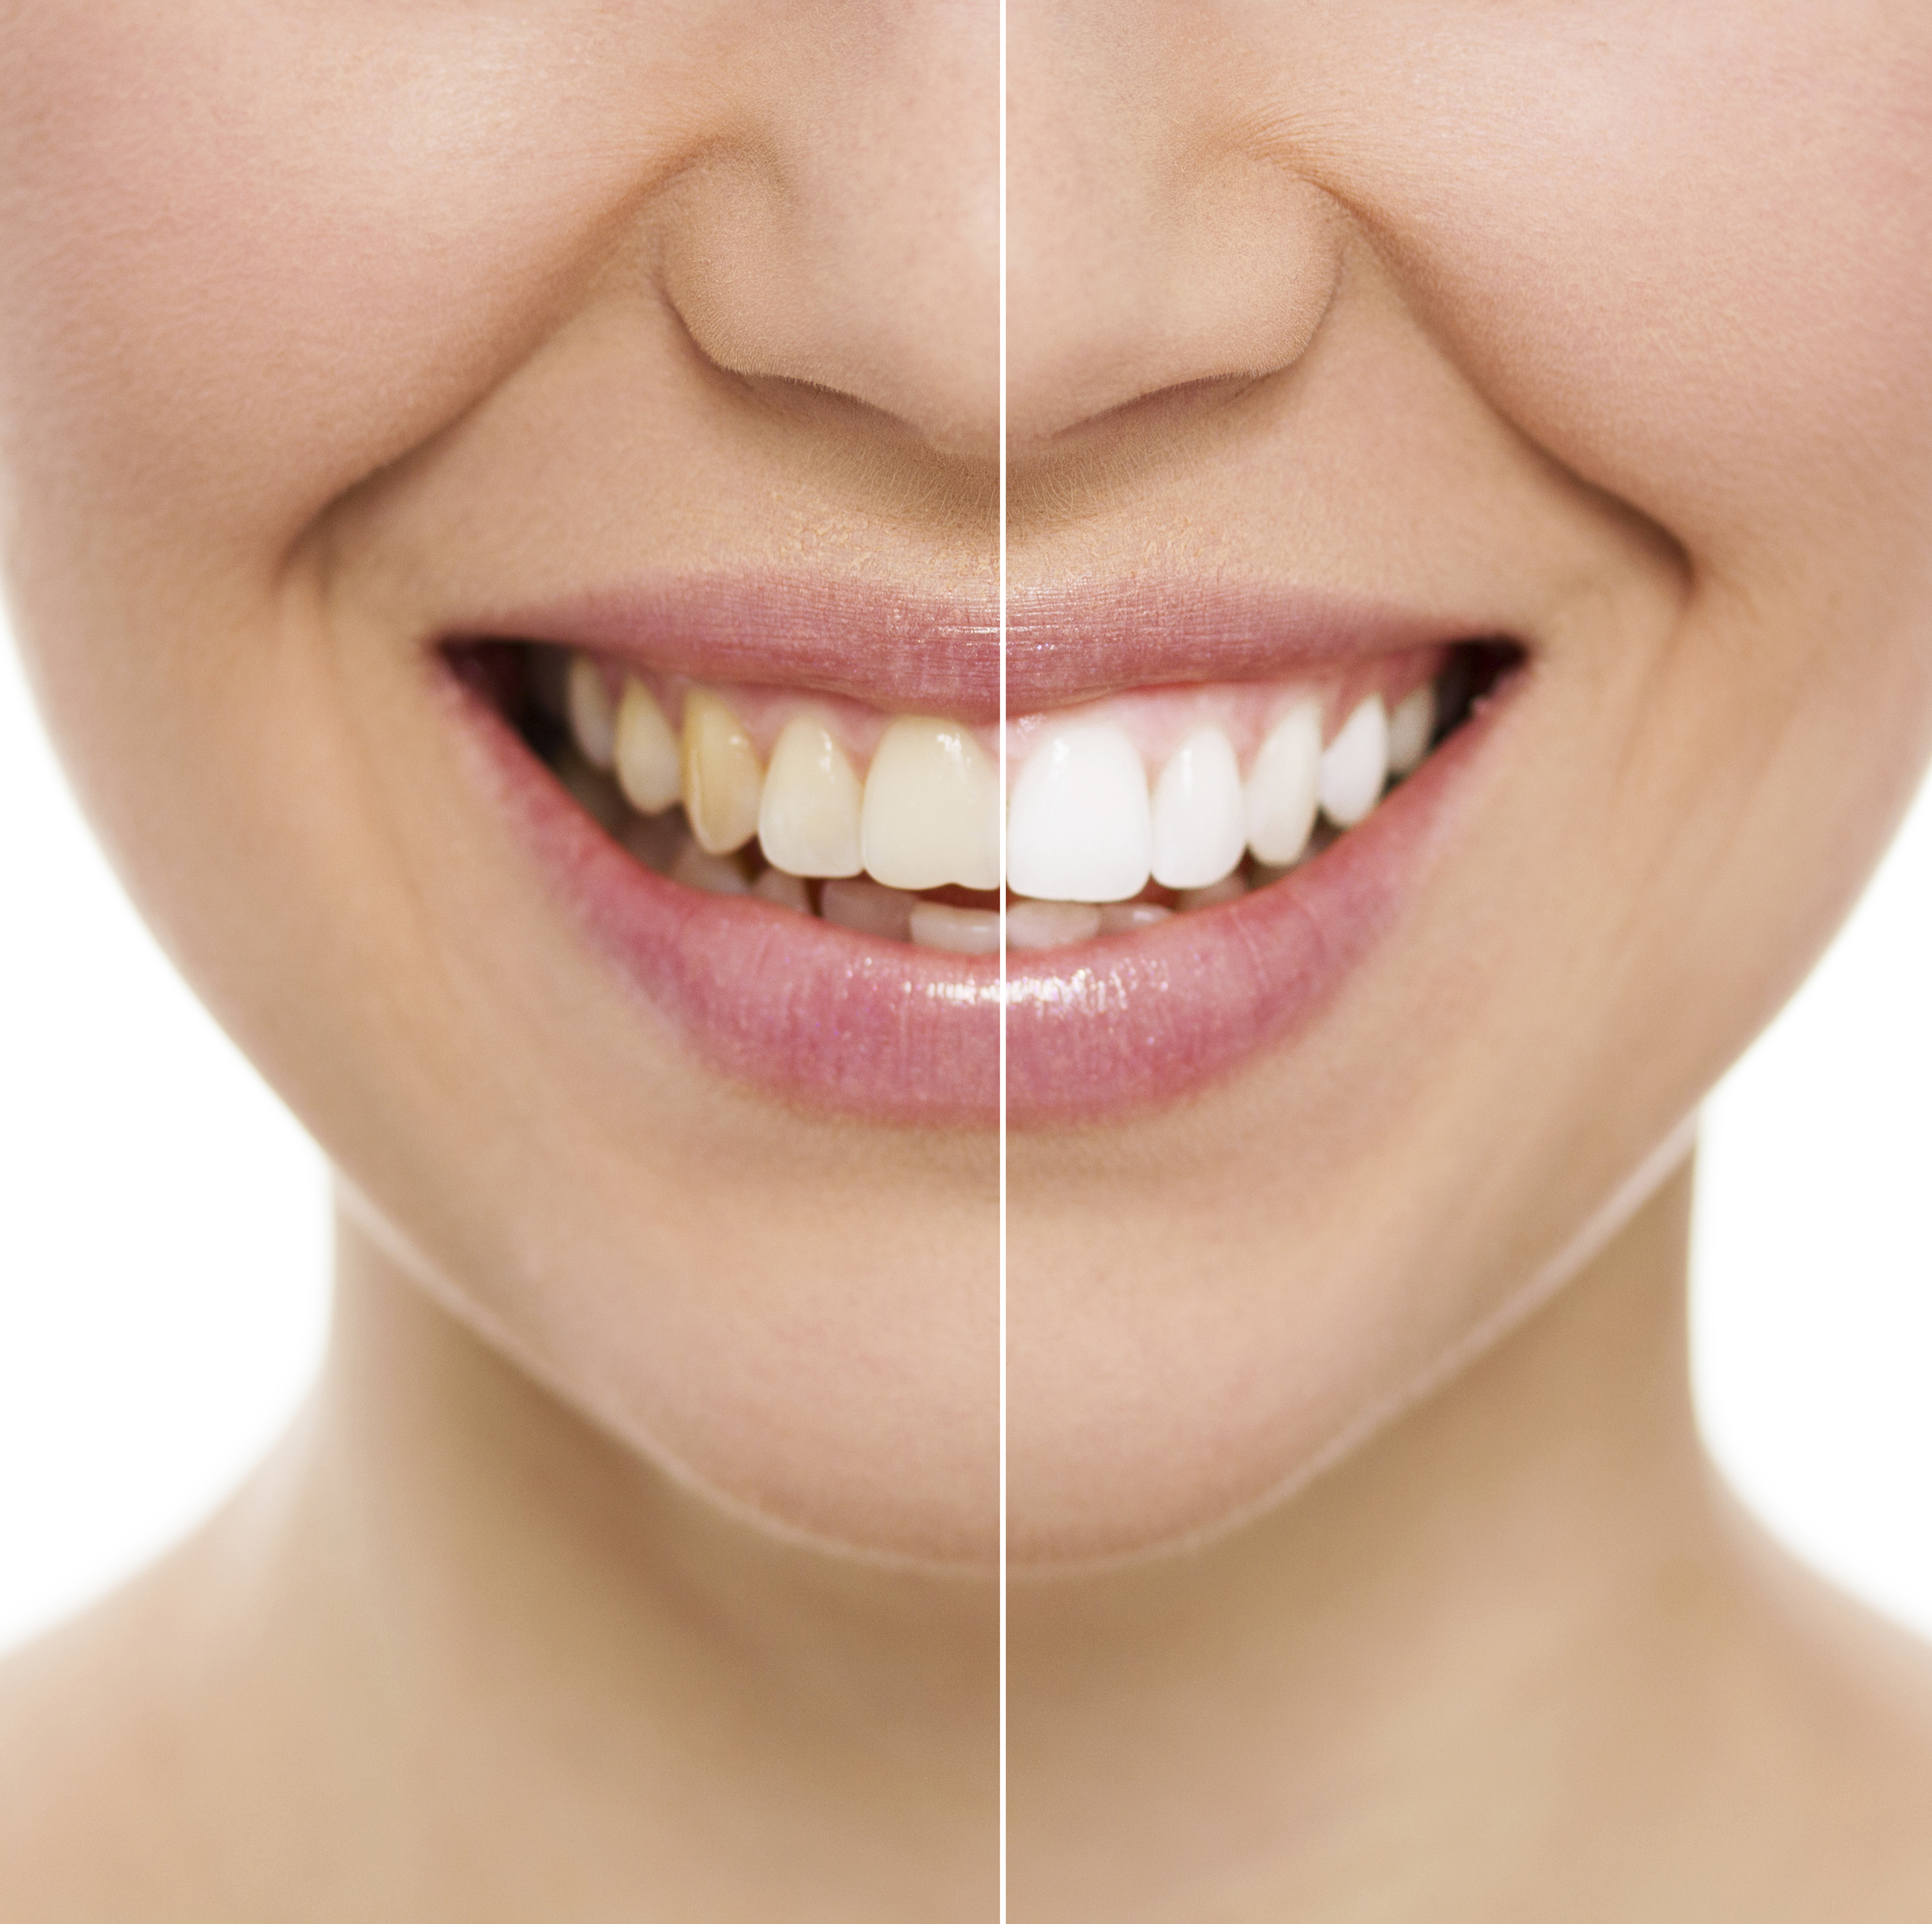 Cosmetic treatments available at a Wiltshire dentist